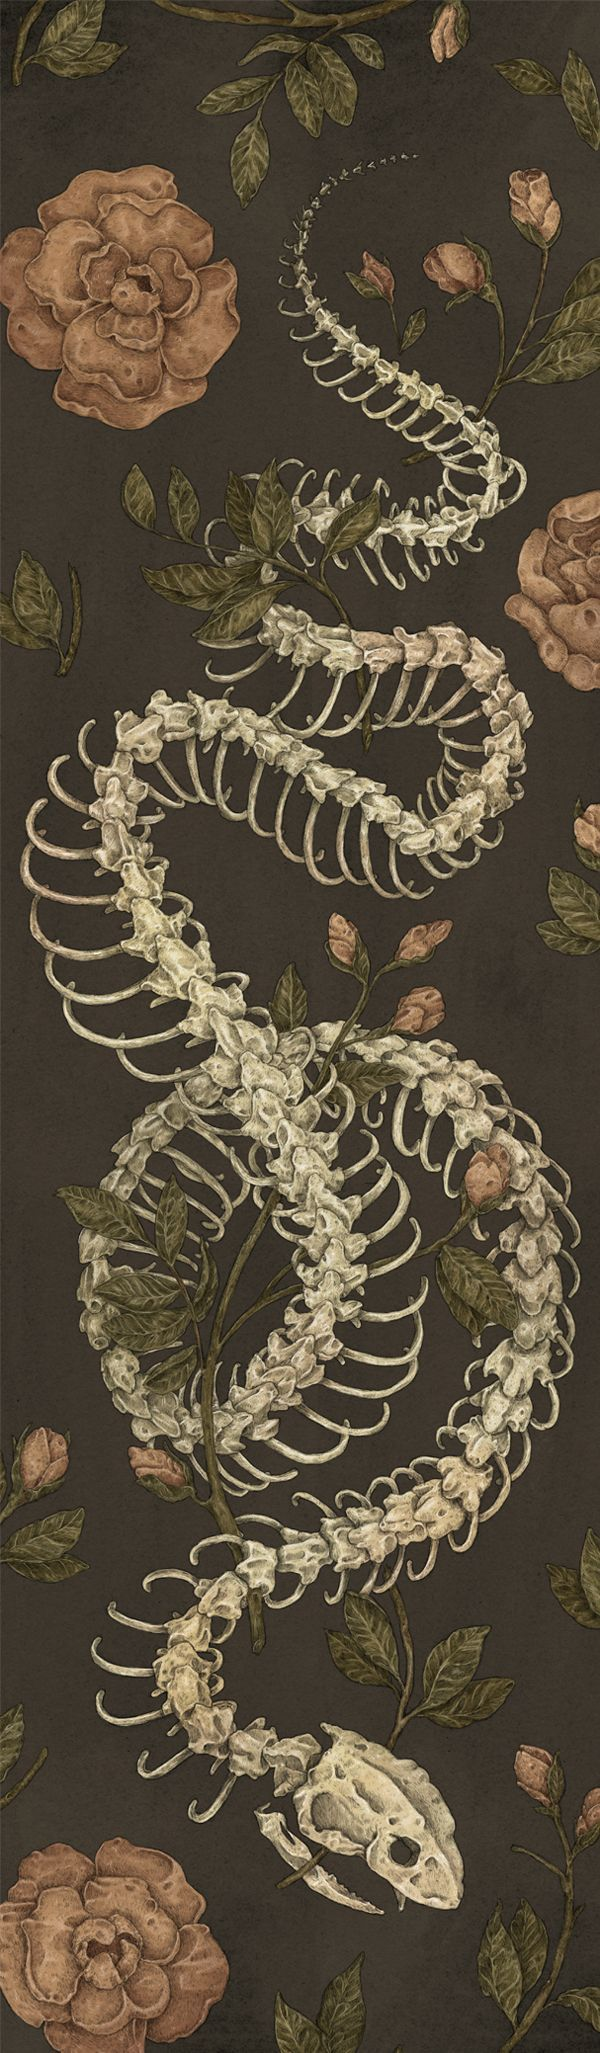 Shocking Yin Yang Ouroboros Tattoo Design Projects Image Of Dragon Snake Skeleton Drawing Top Diagram Images For Pinterest Best Tatuaje On Ideas Tattoos